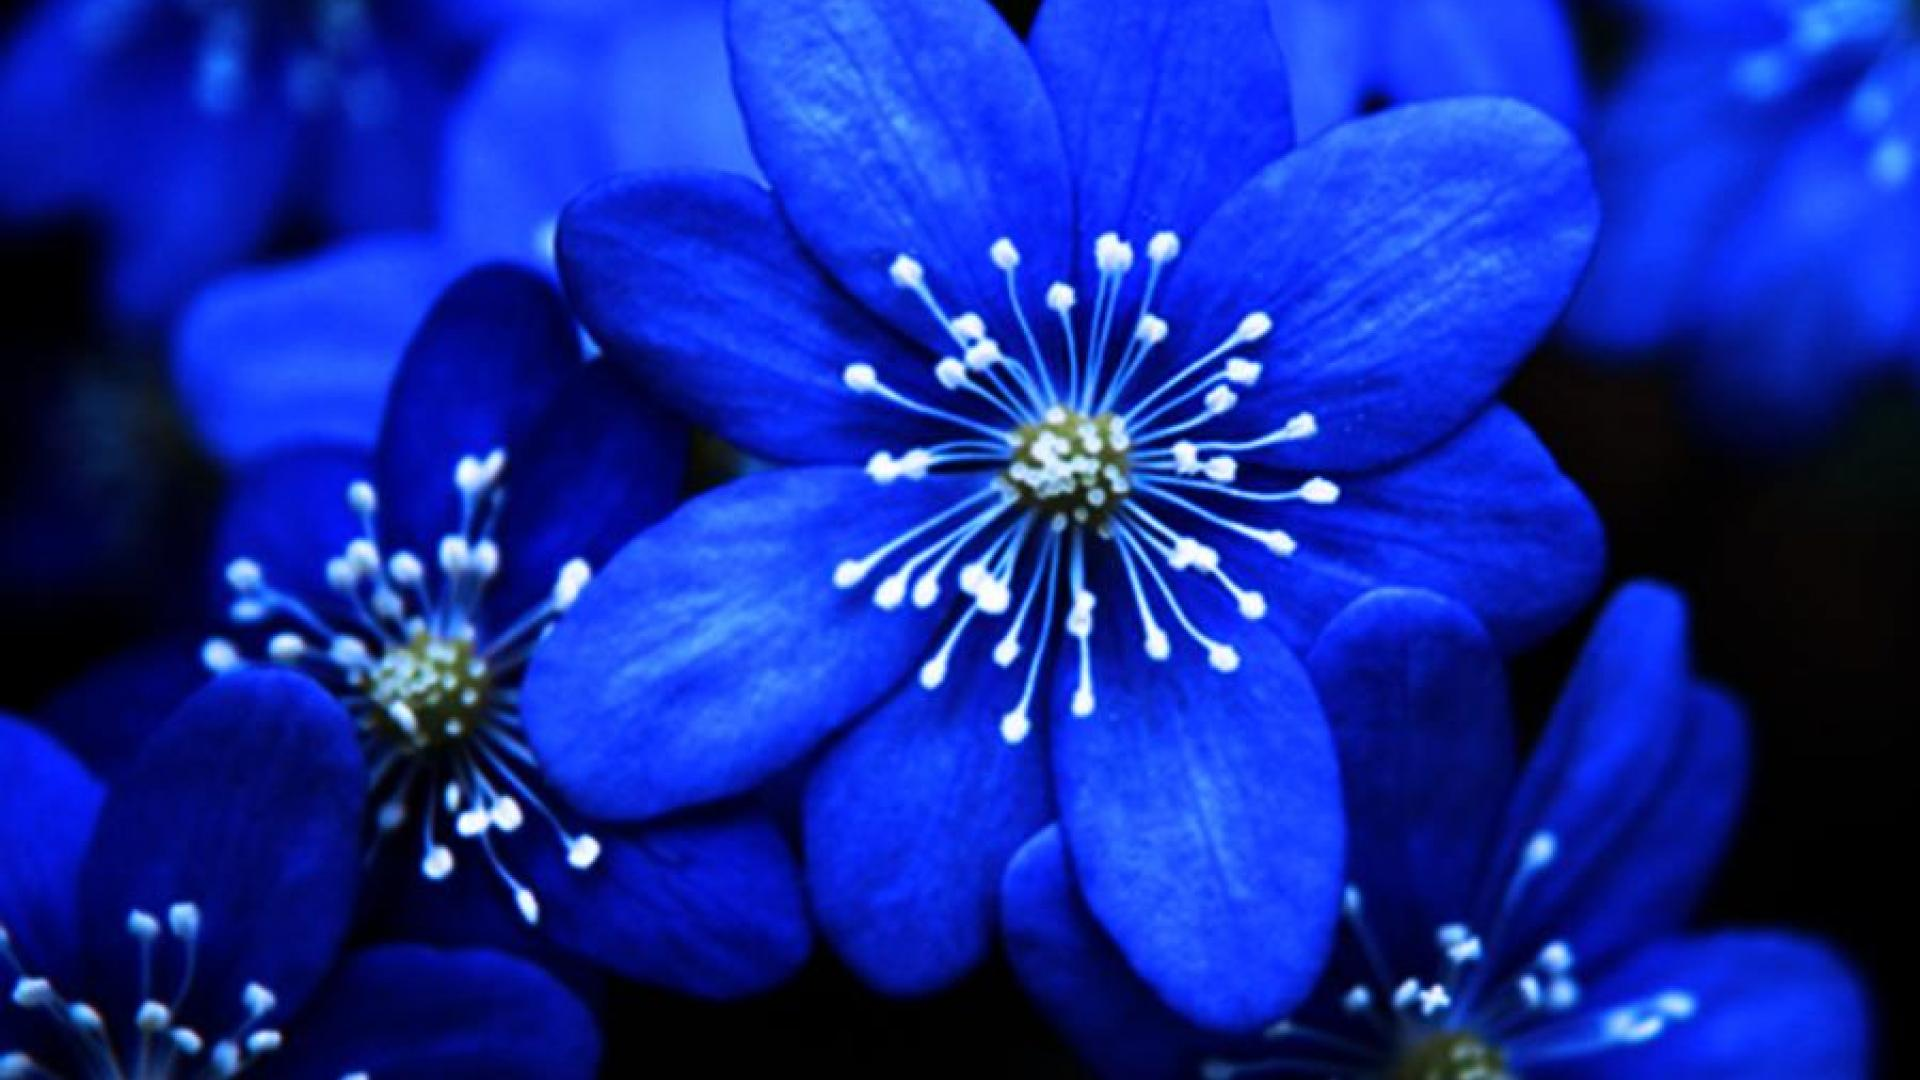 Blue Flowers Hd Wallpapers 28 Background Wallpaper